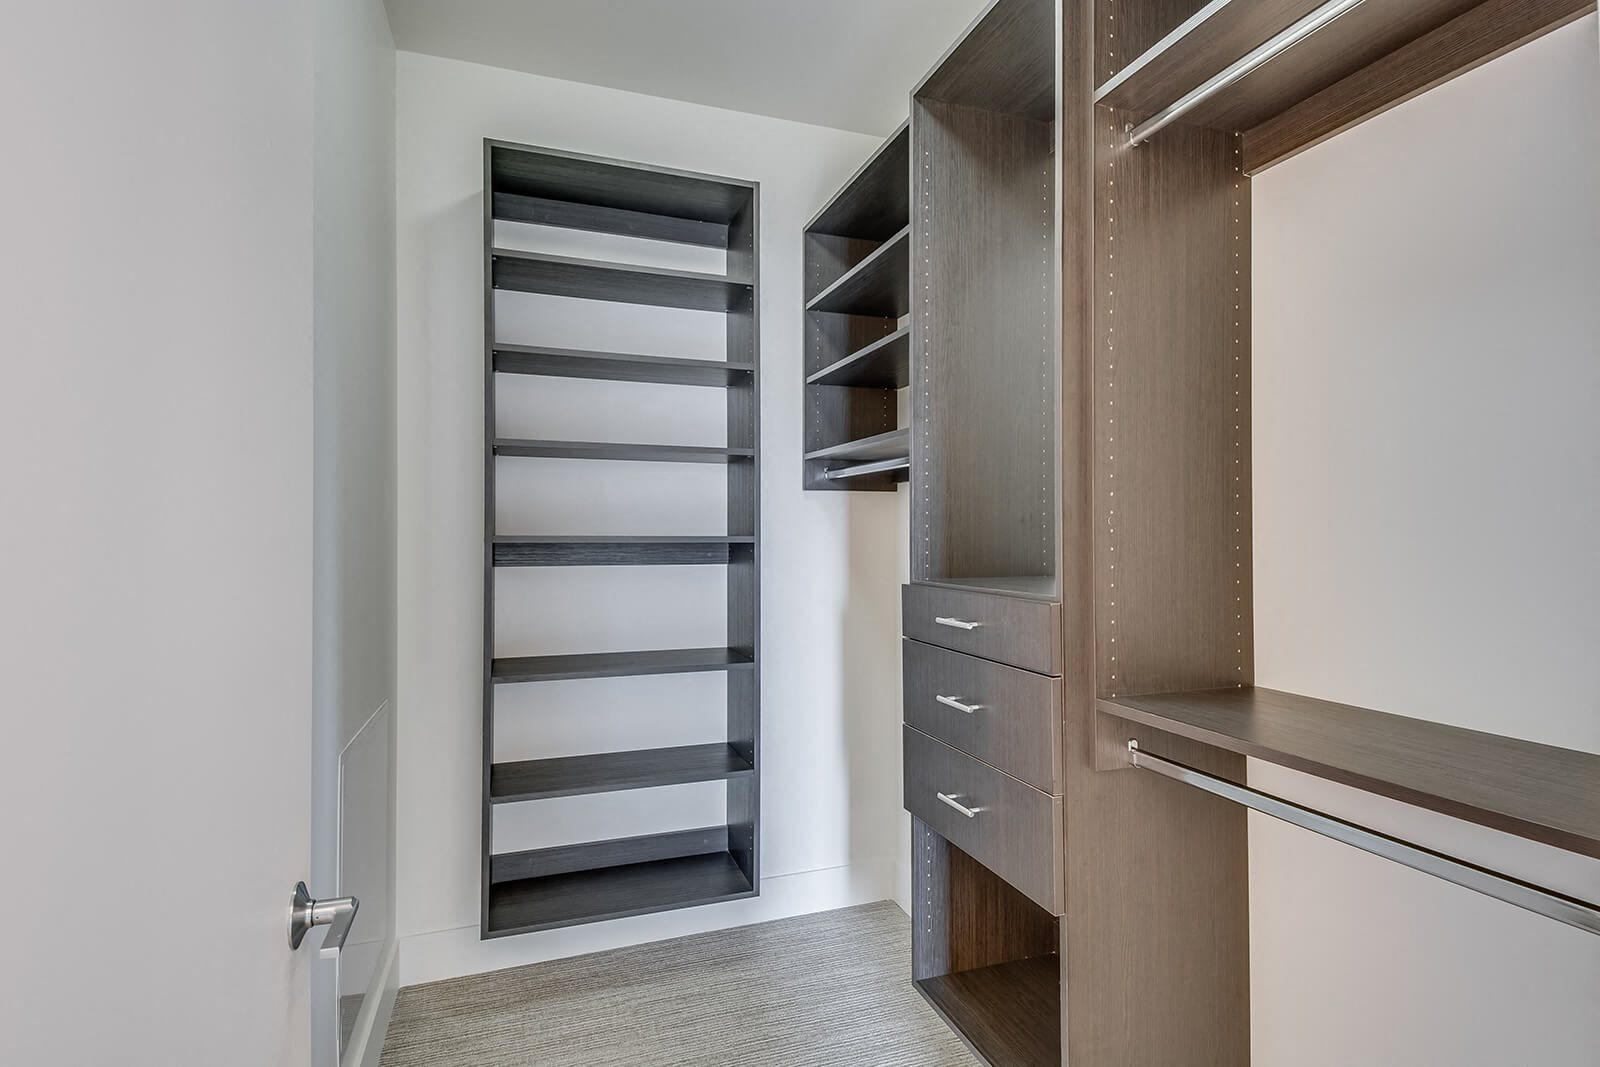 Spacious Walk-In Closets with Built-In Shelving Systems at Cirrus, Seattle, 98121